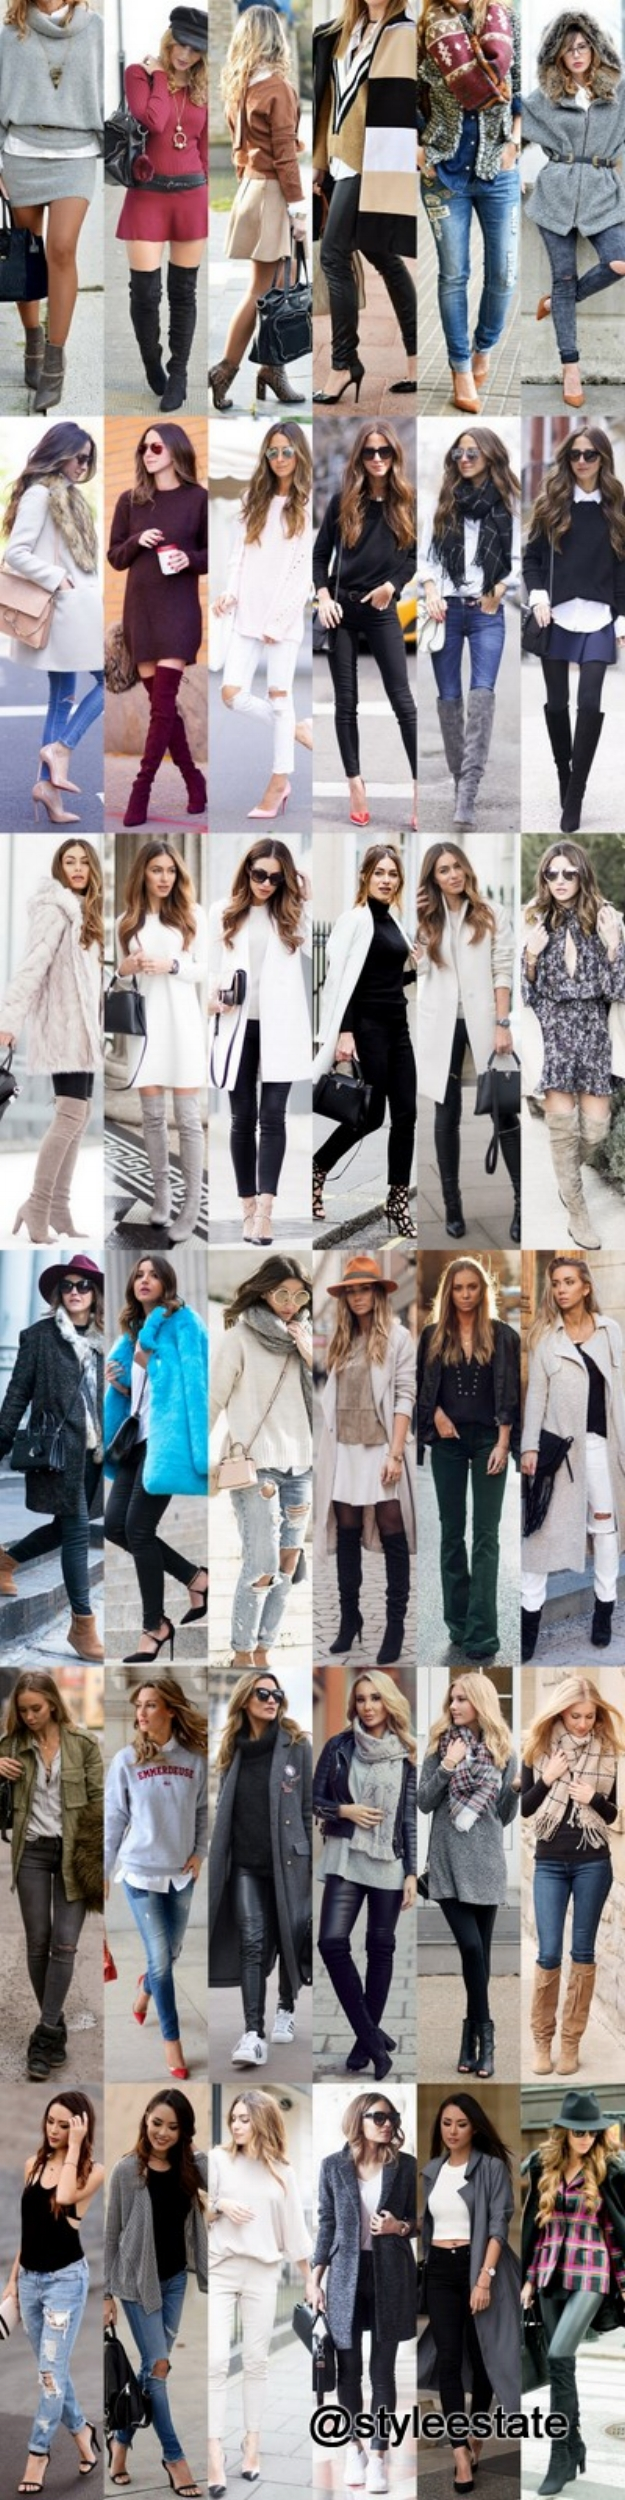 Fashion Trends Daily  - Winter Outfit Inspiration 2016 @styleestate